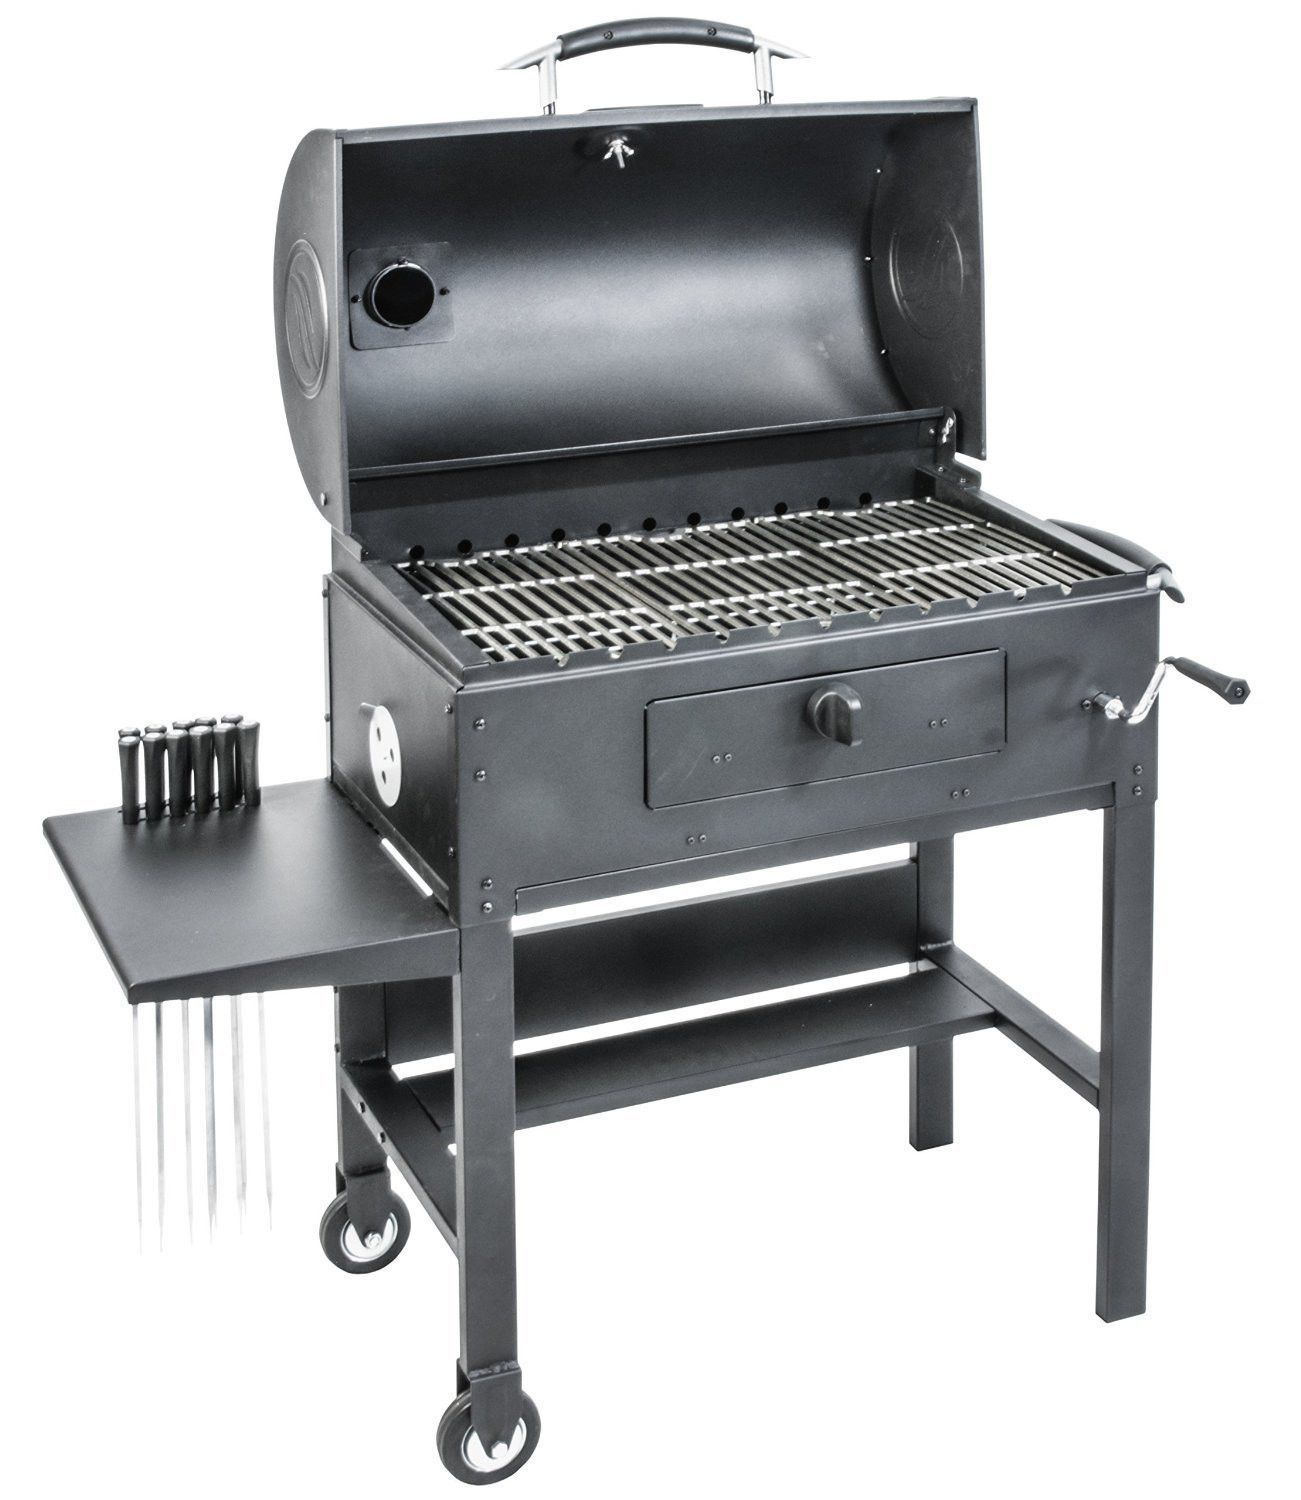 Blackstone Charcoal Grill Barbecue Smoker With Automatic